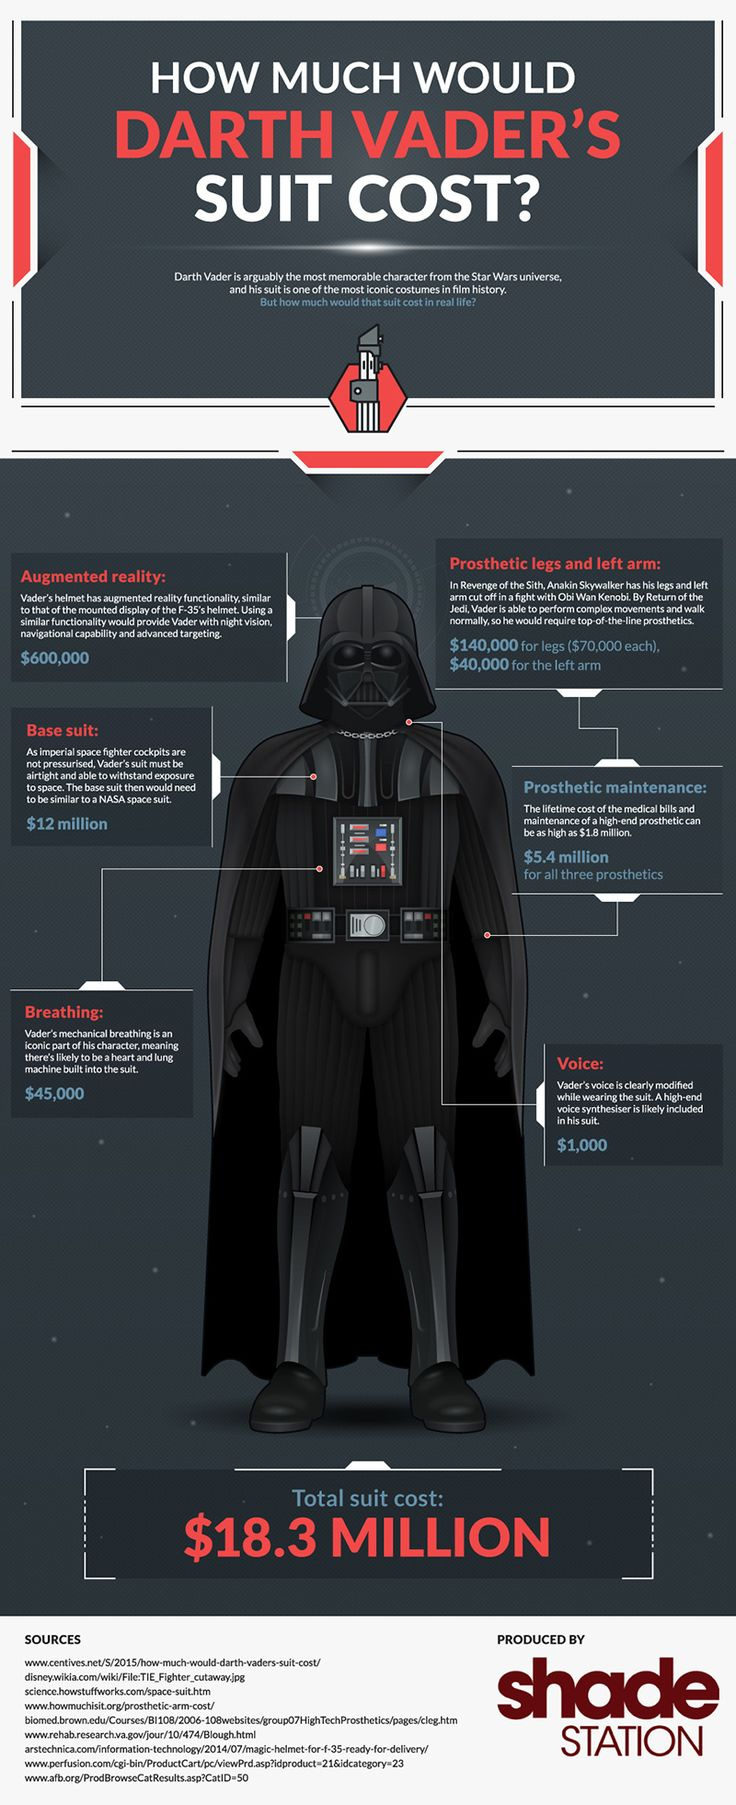 You Could Build a Decent Darth Vader Suit For $18.3 Million